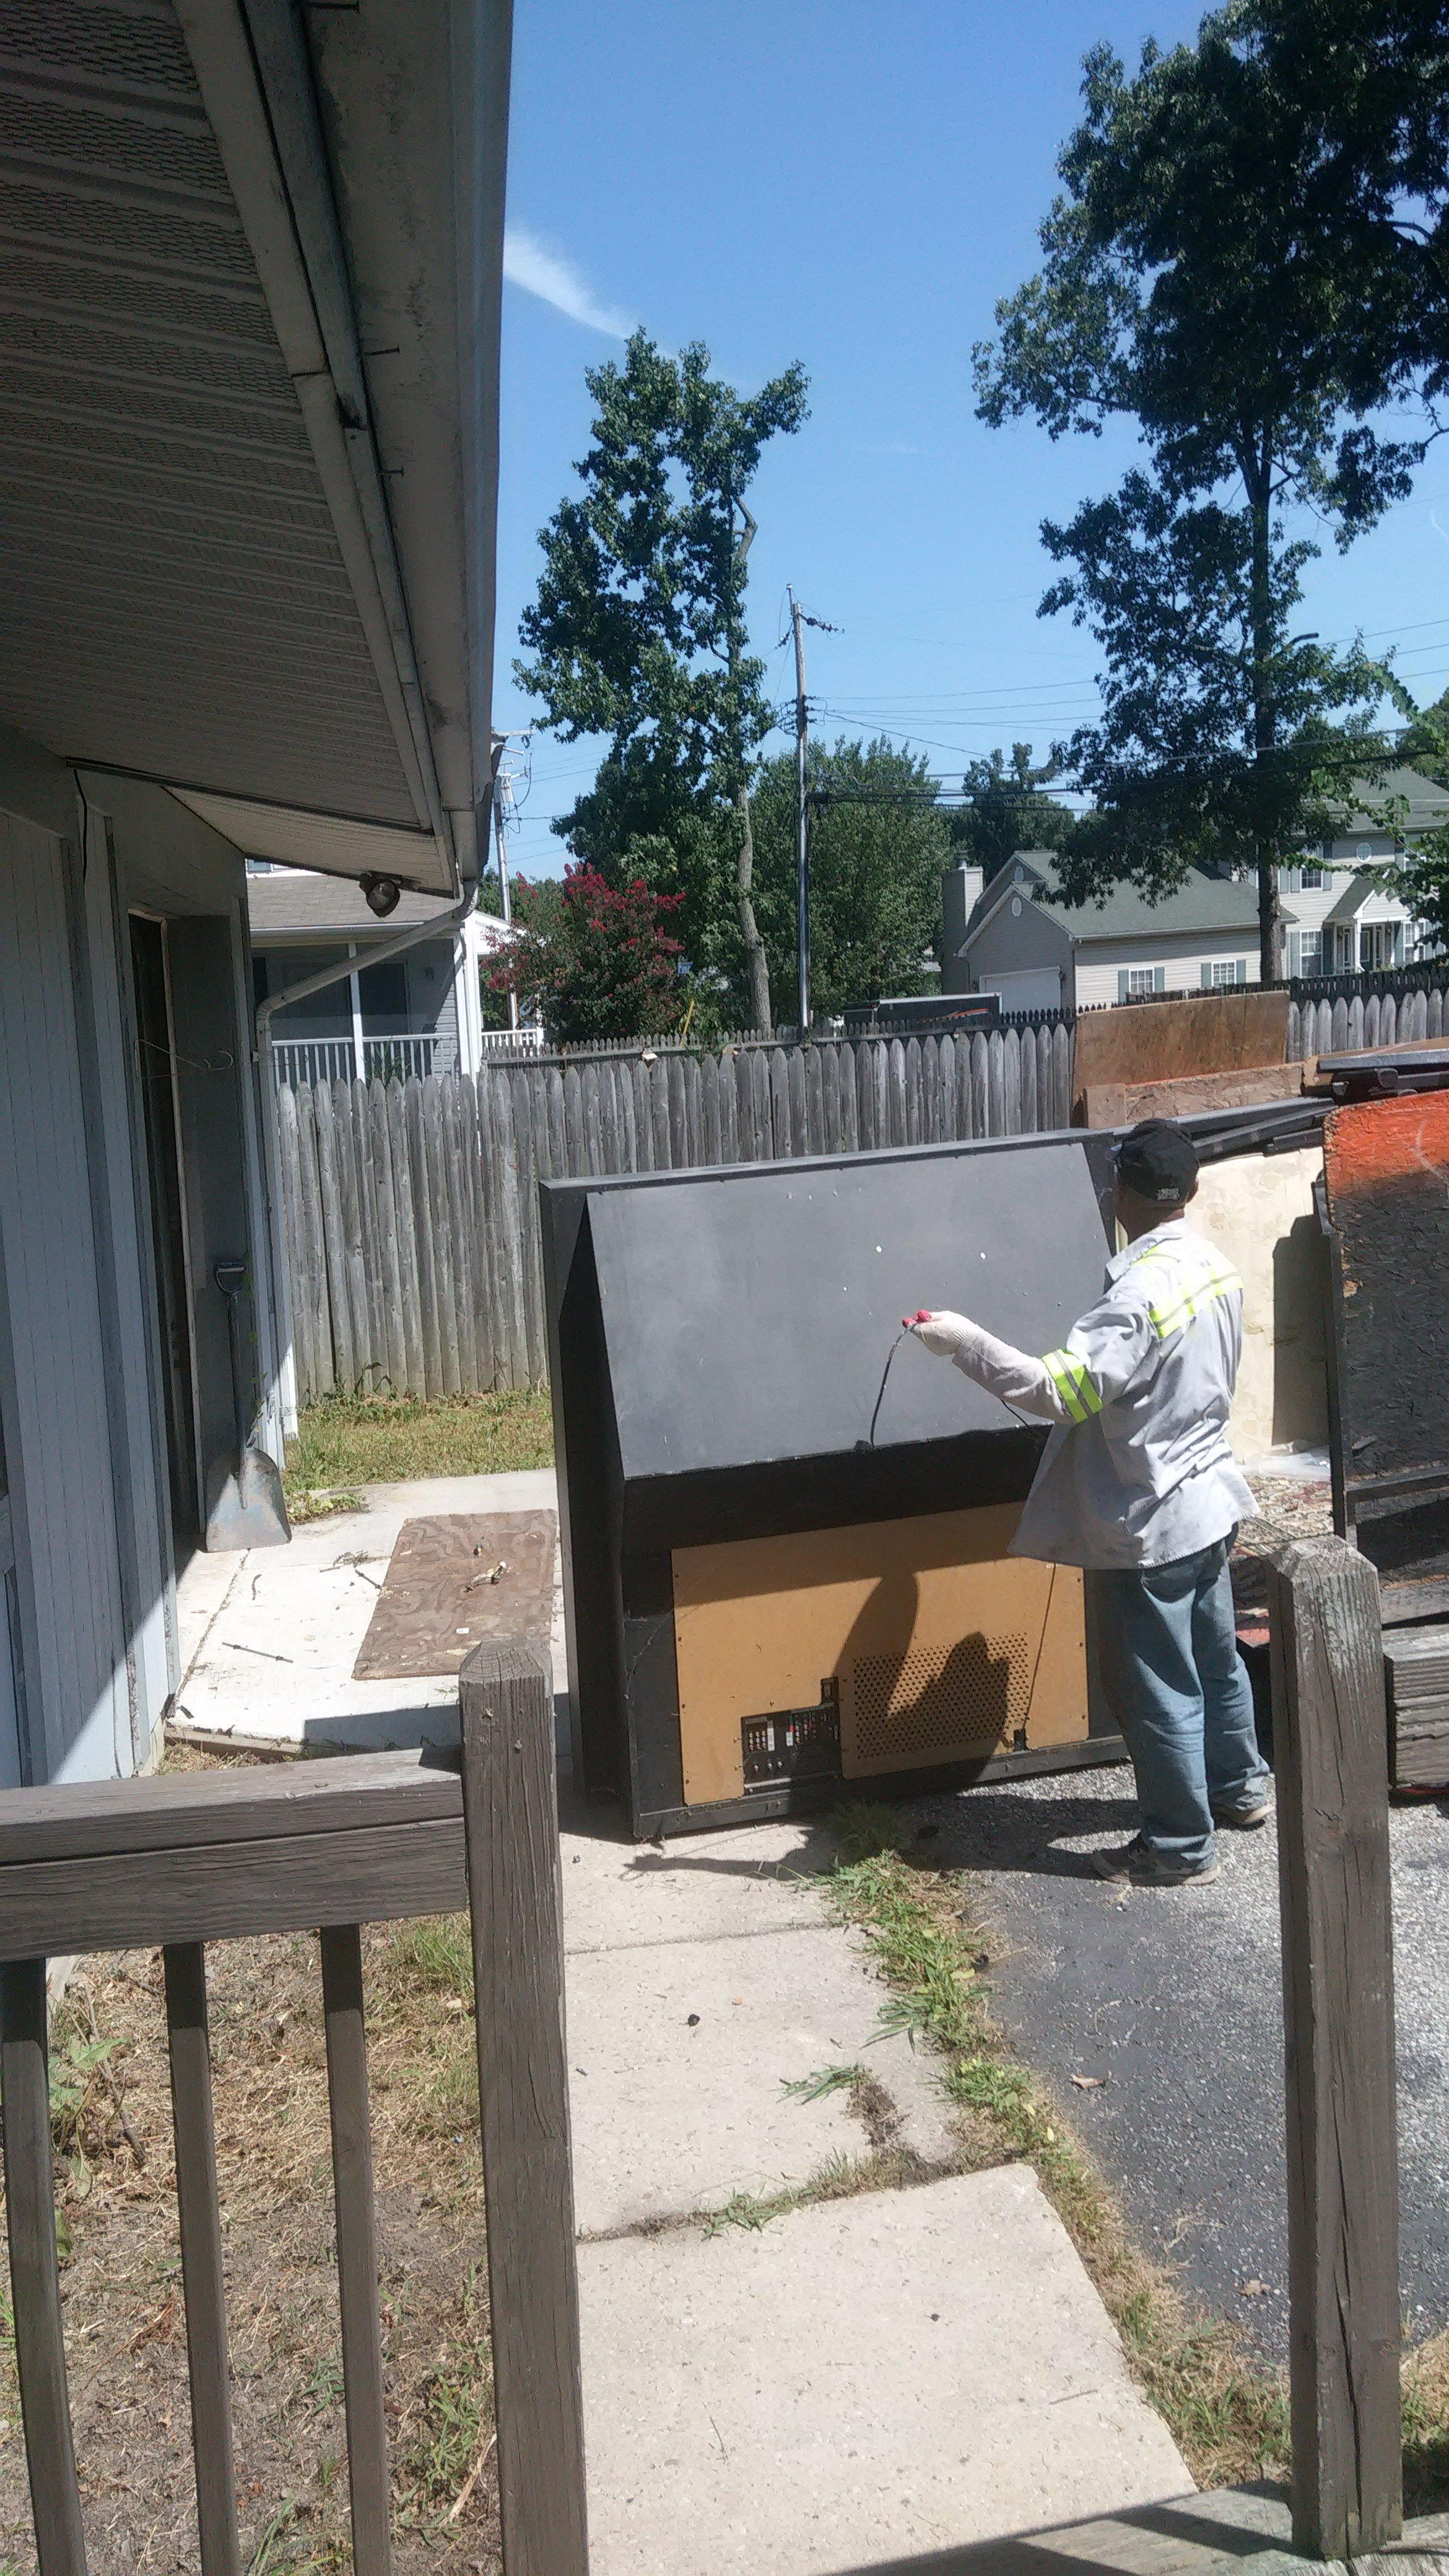 Green's Junk Removal